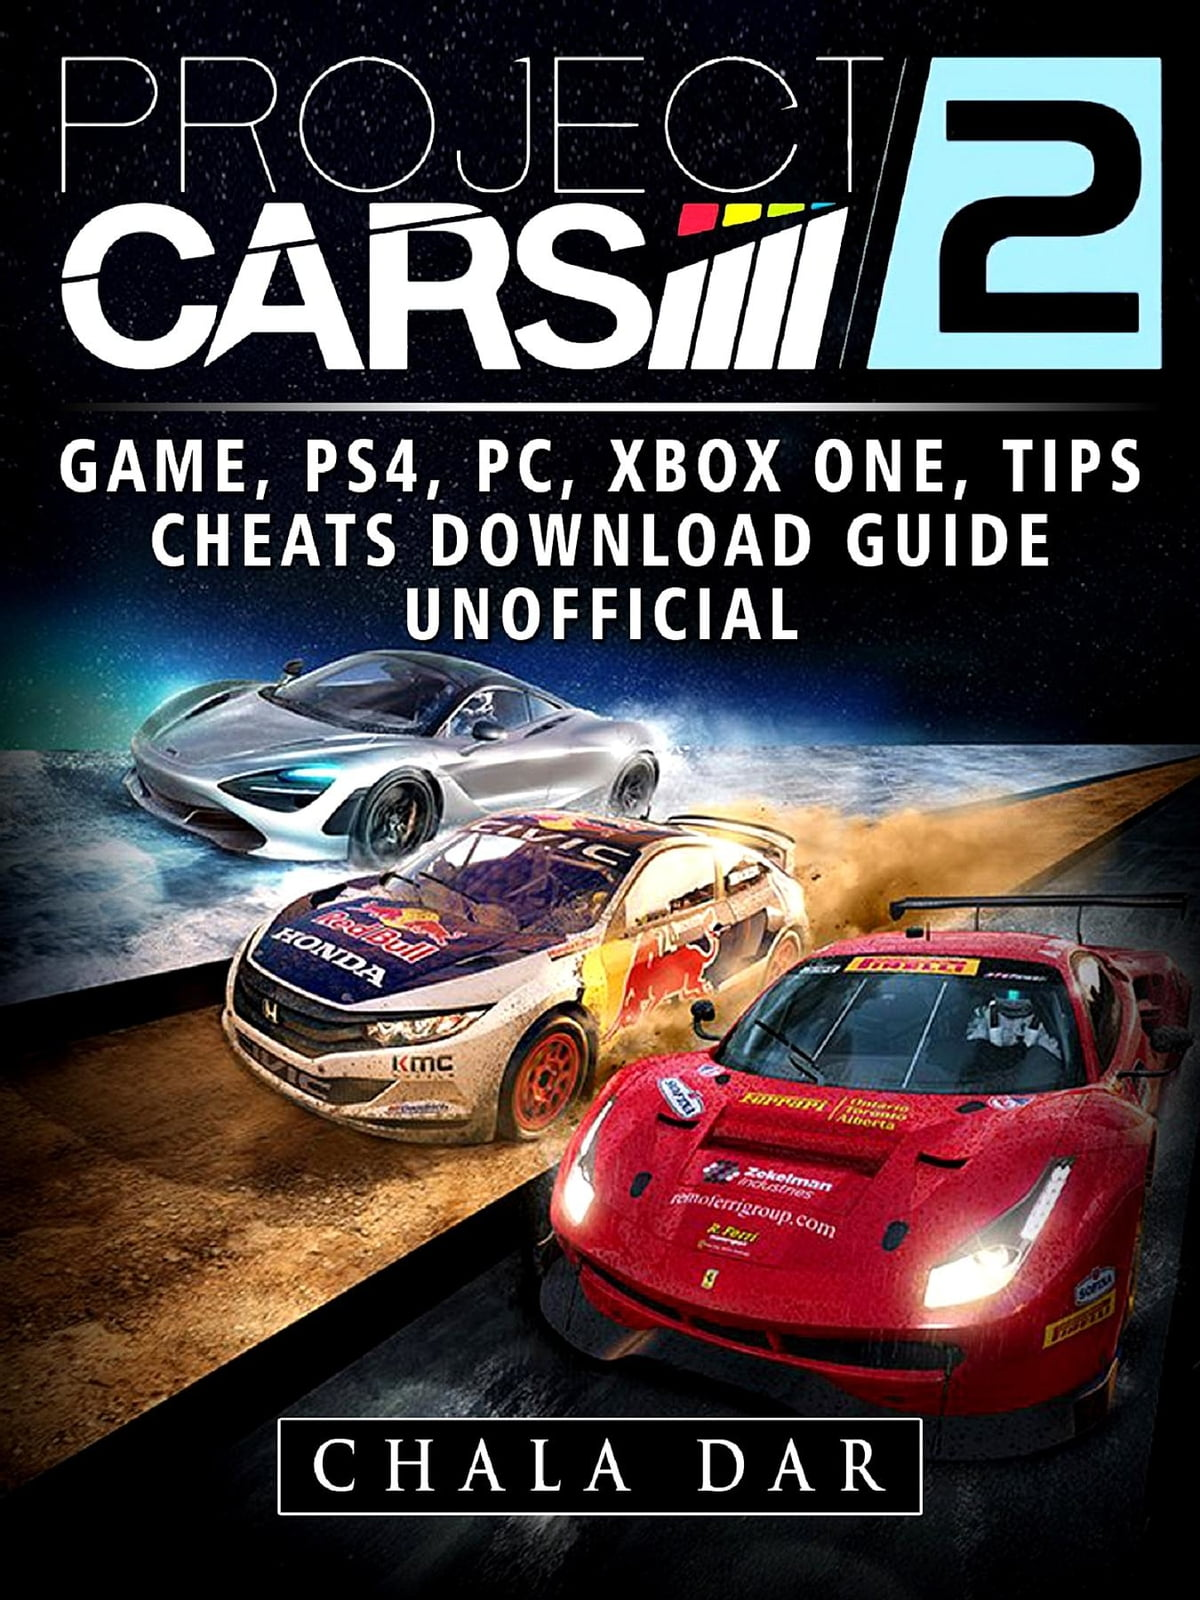 Cars 2 The Video Game Cheats Amp Codes For Playstation 3 Induced